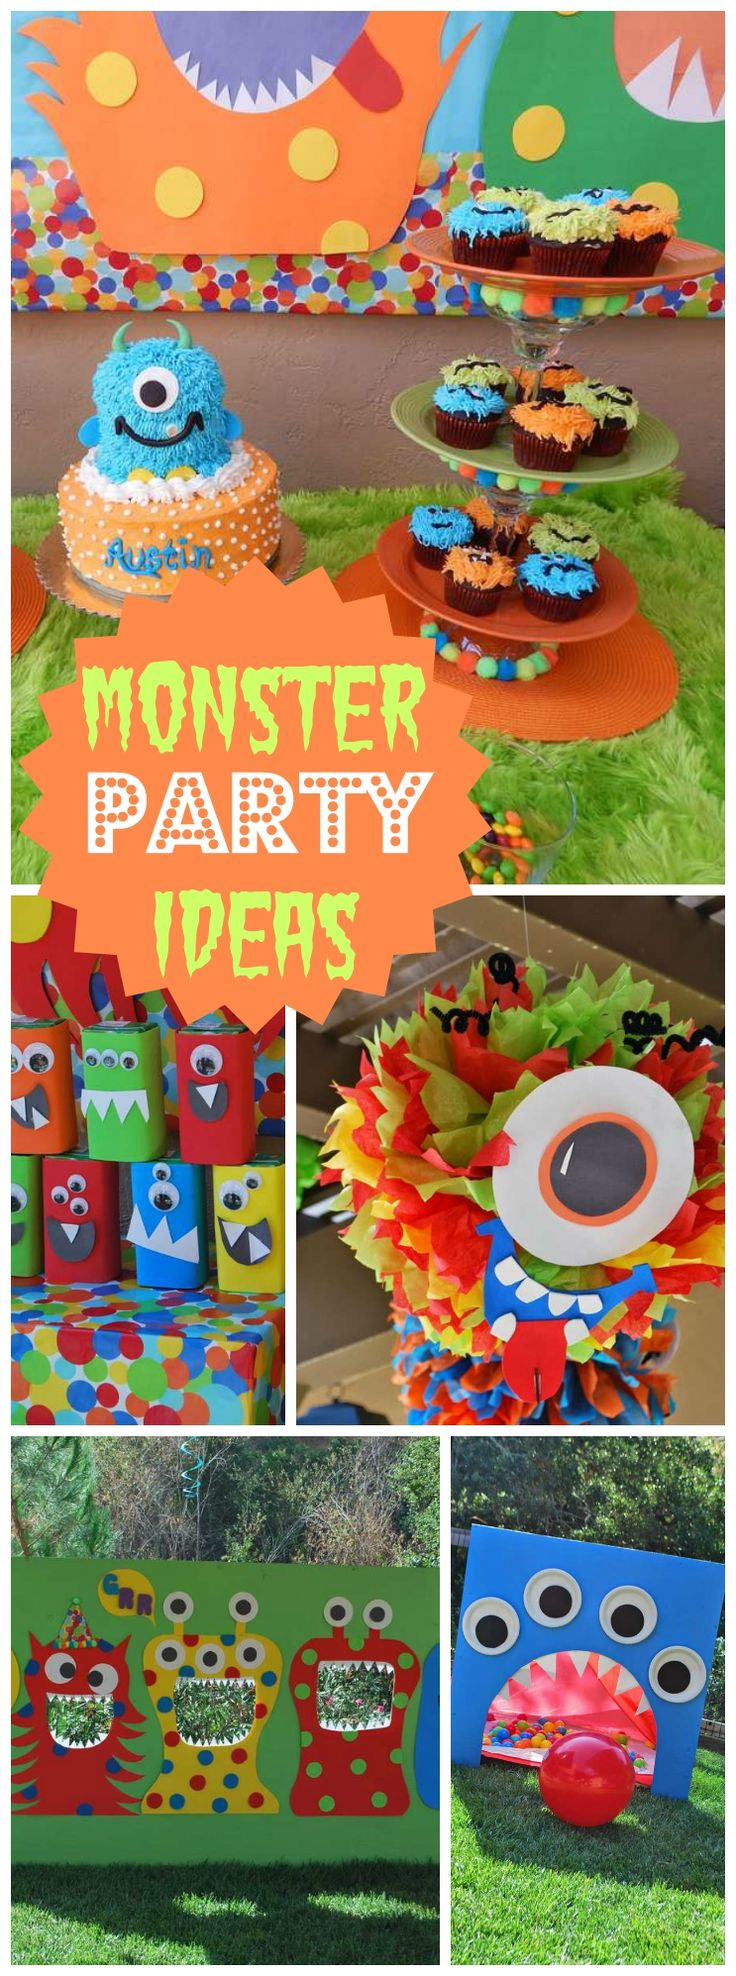 212 best Monster Party Ideas images on Pinterest Monster party